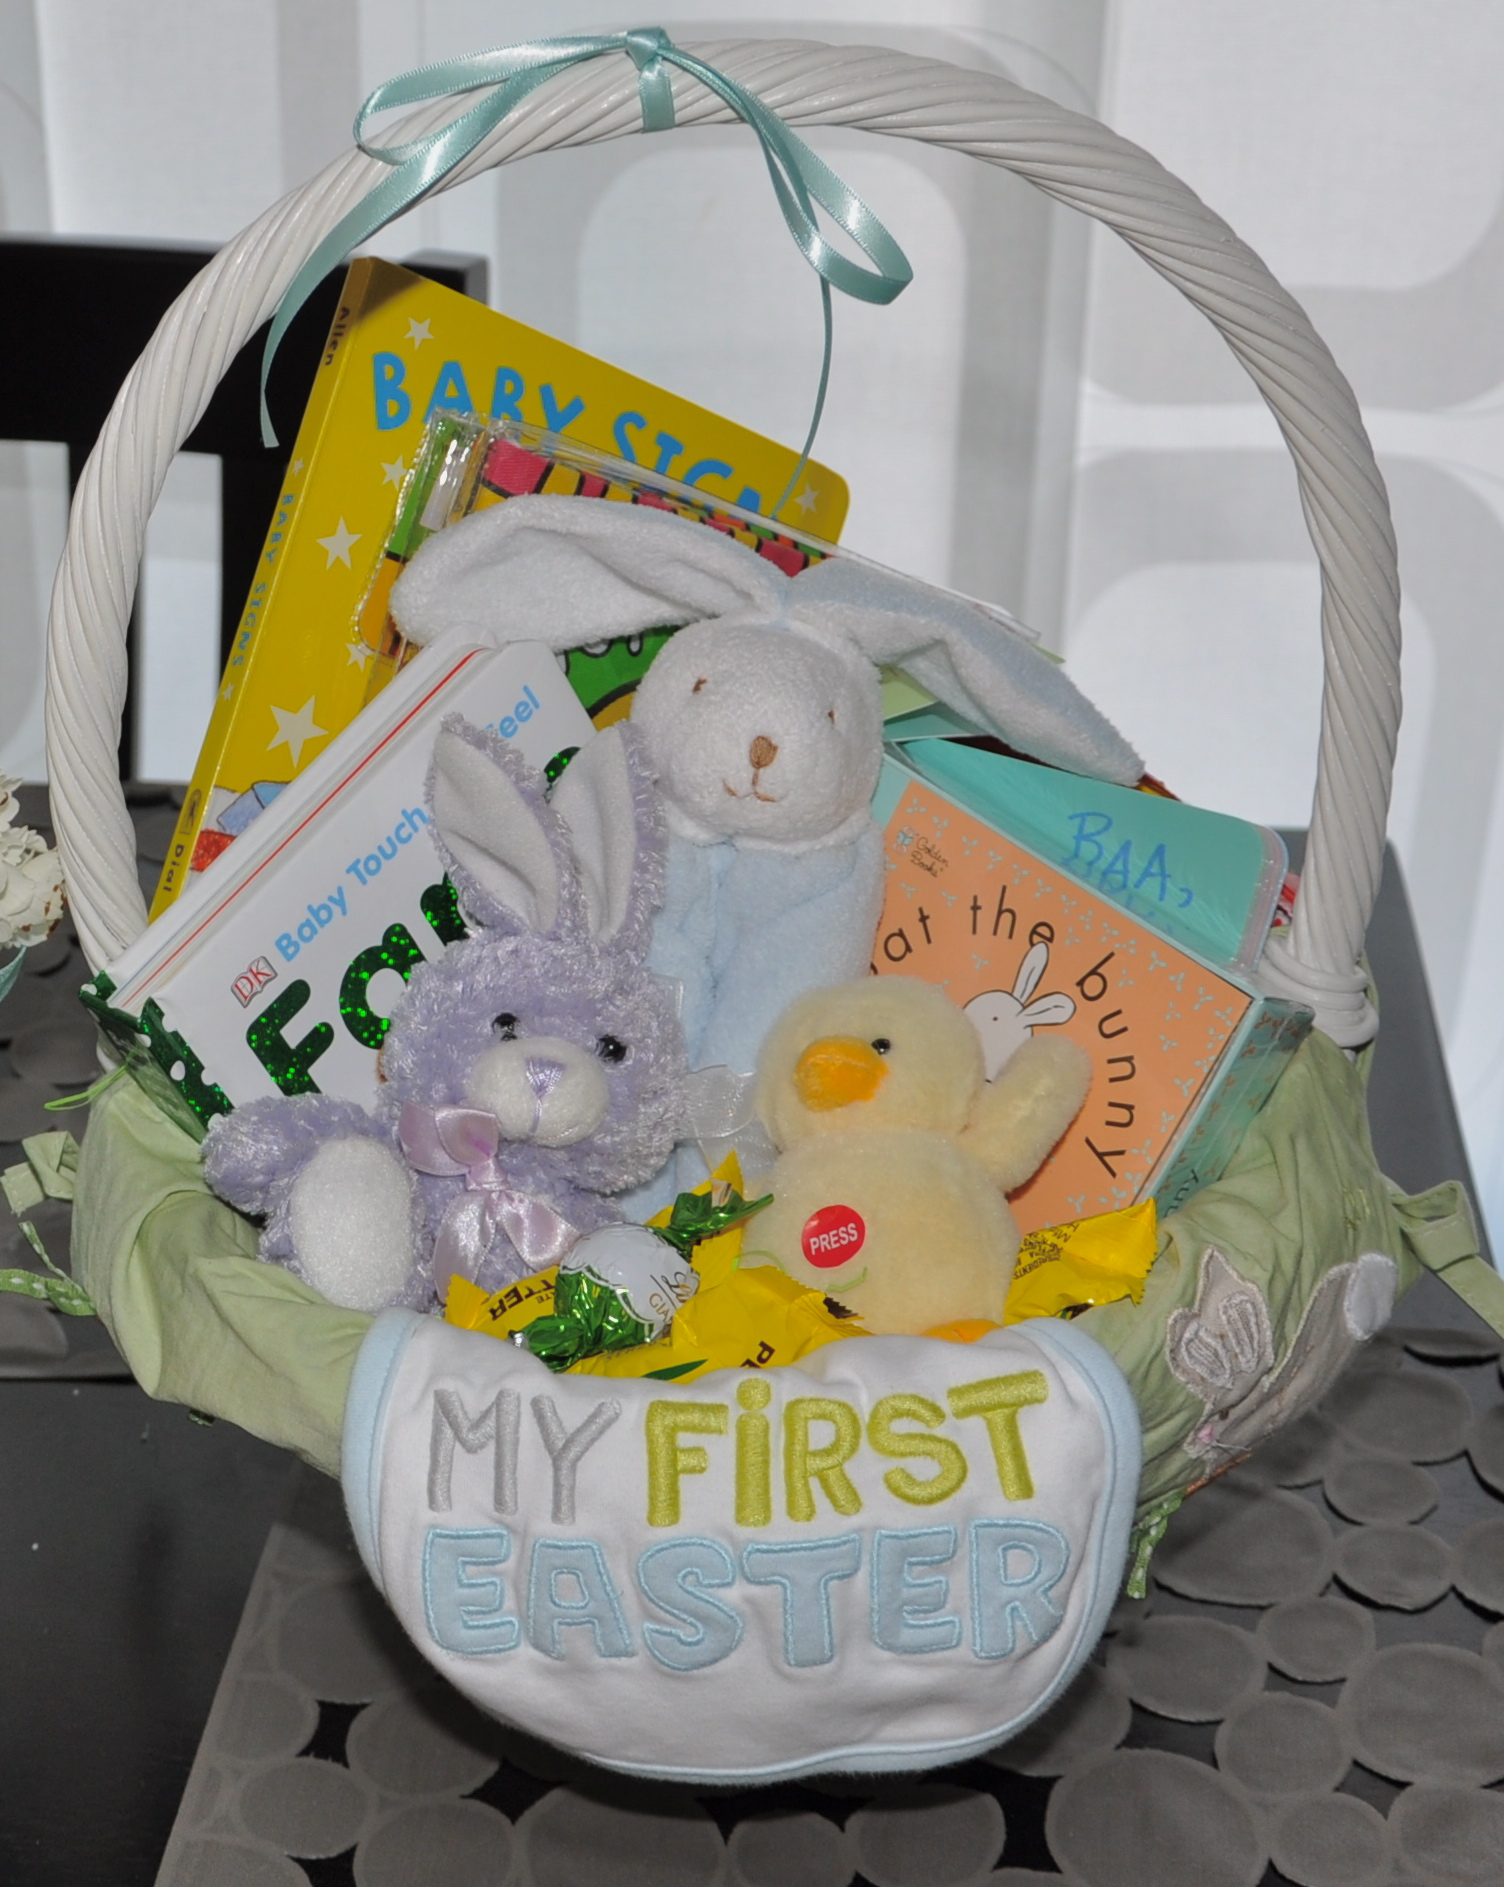 Babys first easter basket 2 sisters 2 cities even though easter is still a month away i like to start hiding away things for my sons easter basket as i come across fun ideas in stores or on line negle Choice Image